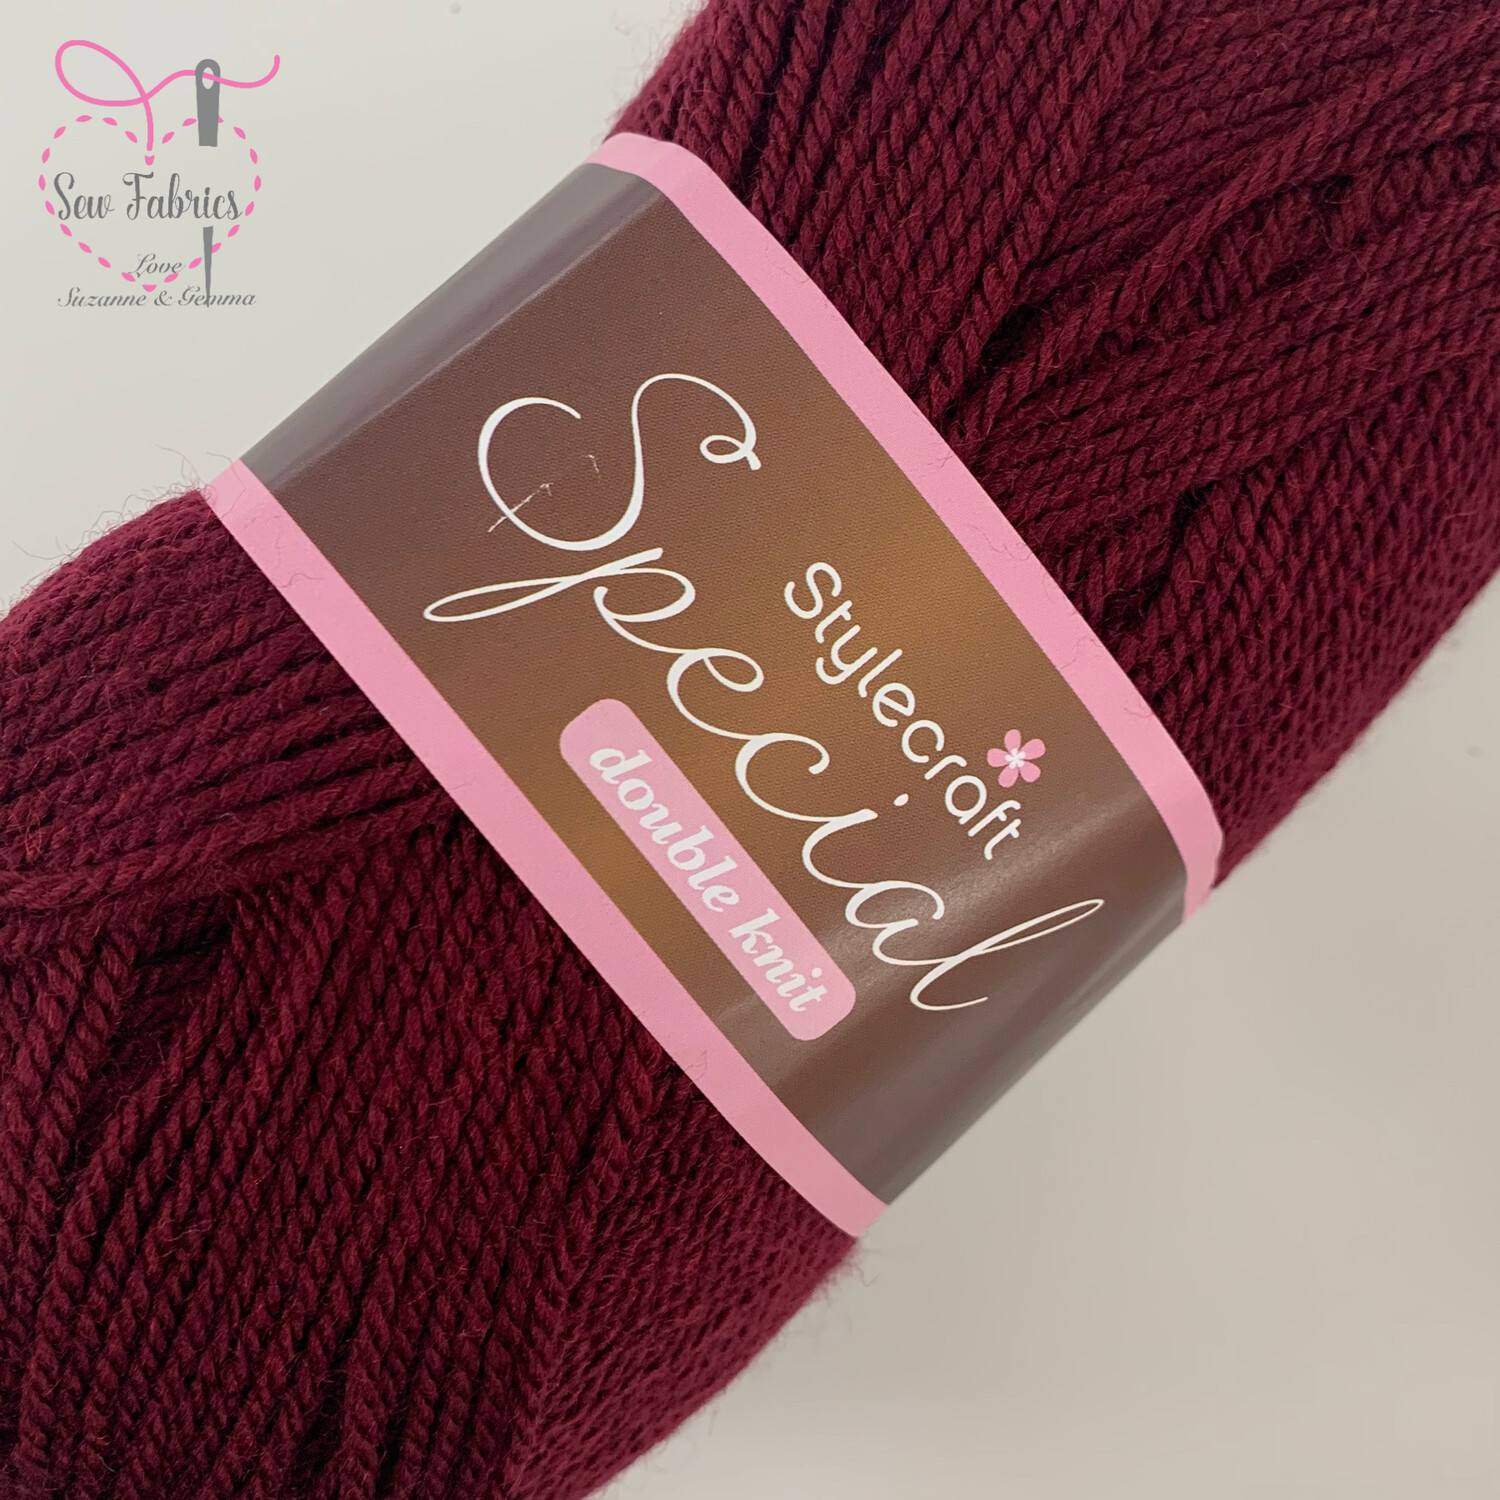 Stylecraft Special DK 100% Premium Acrylic Wool - Burgundy  Buy More Than 1 Ball & Get 30% Off With Code STYLE30